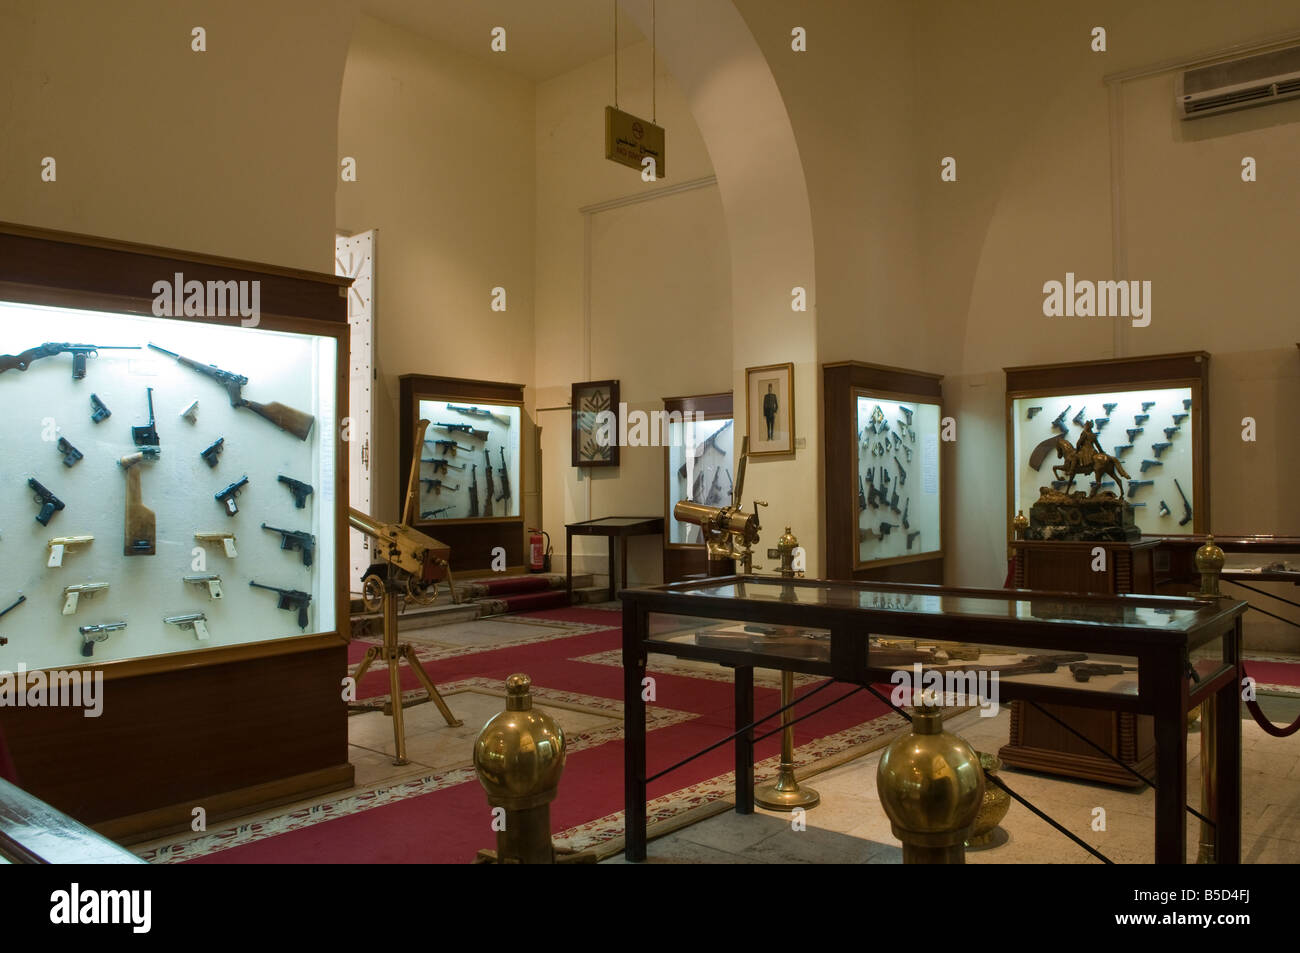 Old Weapons Displayed At The Arms Room In Abdeen Palace Museum Cairo Egypt